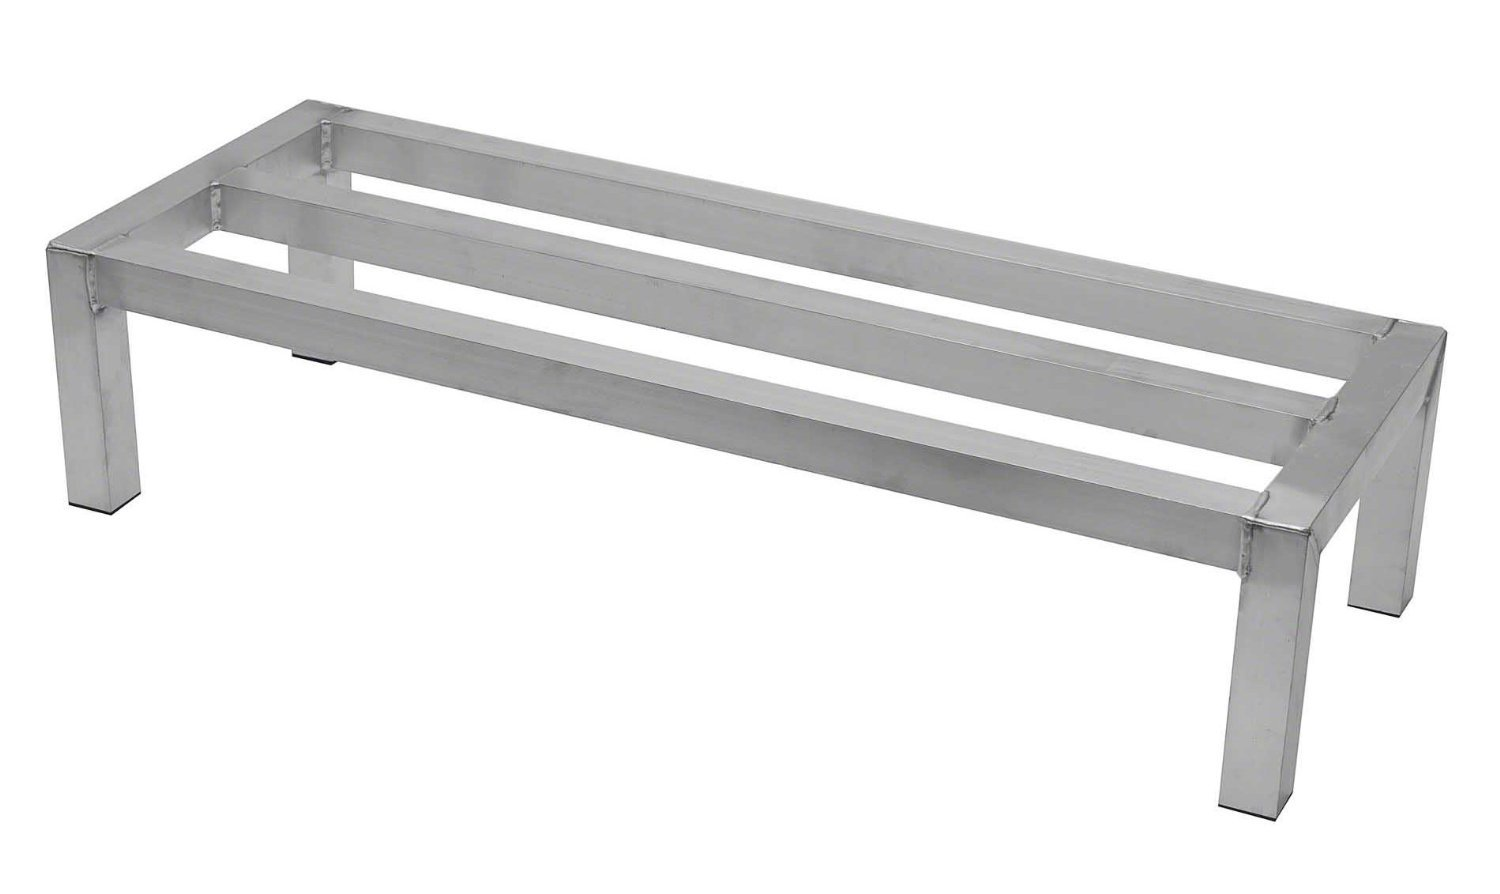 Update International DNRK-1436 Aluminum. Dunnage Rack 14in x 36in